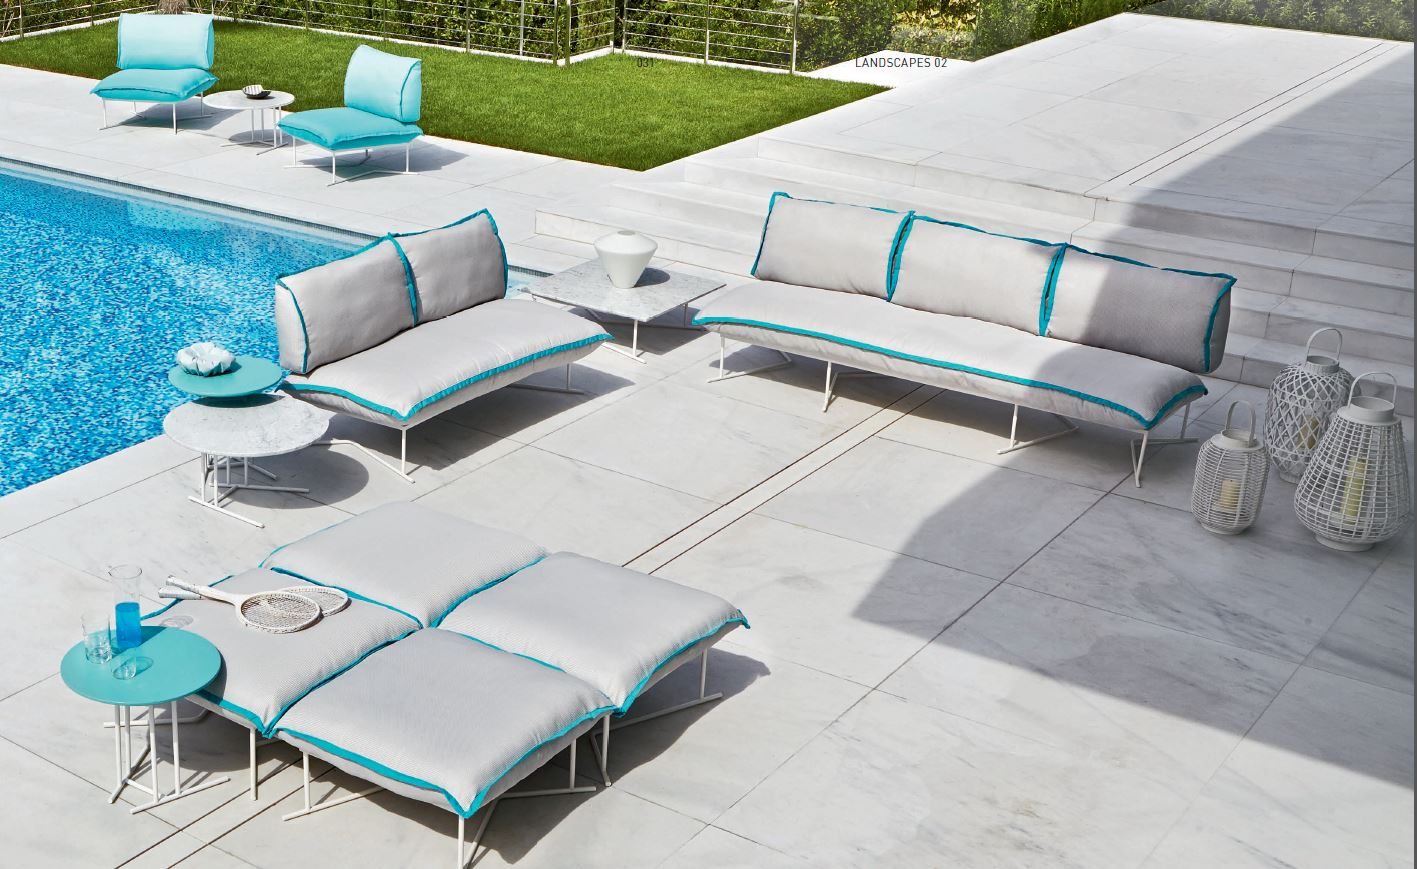 covers cover likable south modern chairs patio sofa outdoor side sets rocking designs trex amish porch furniture clearance chair mission swings classic dining conversation garden